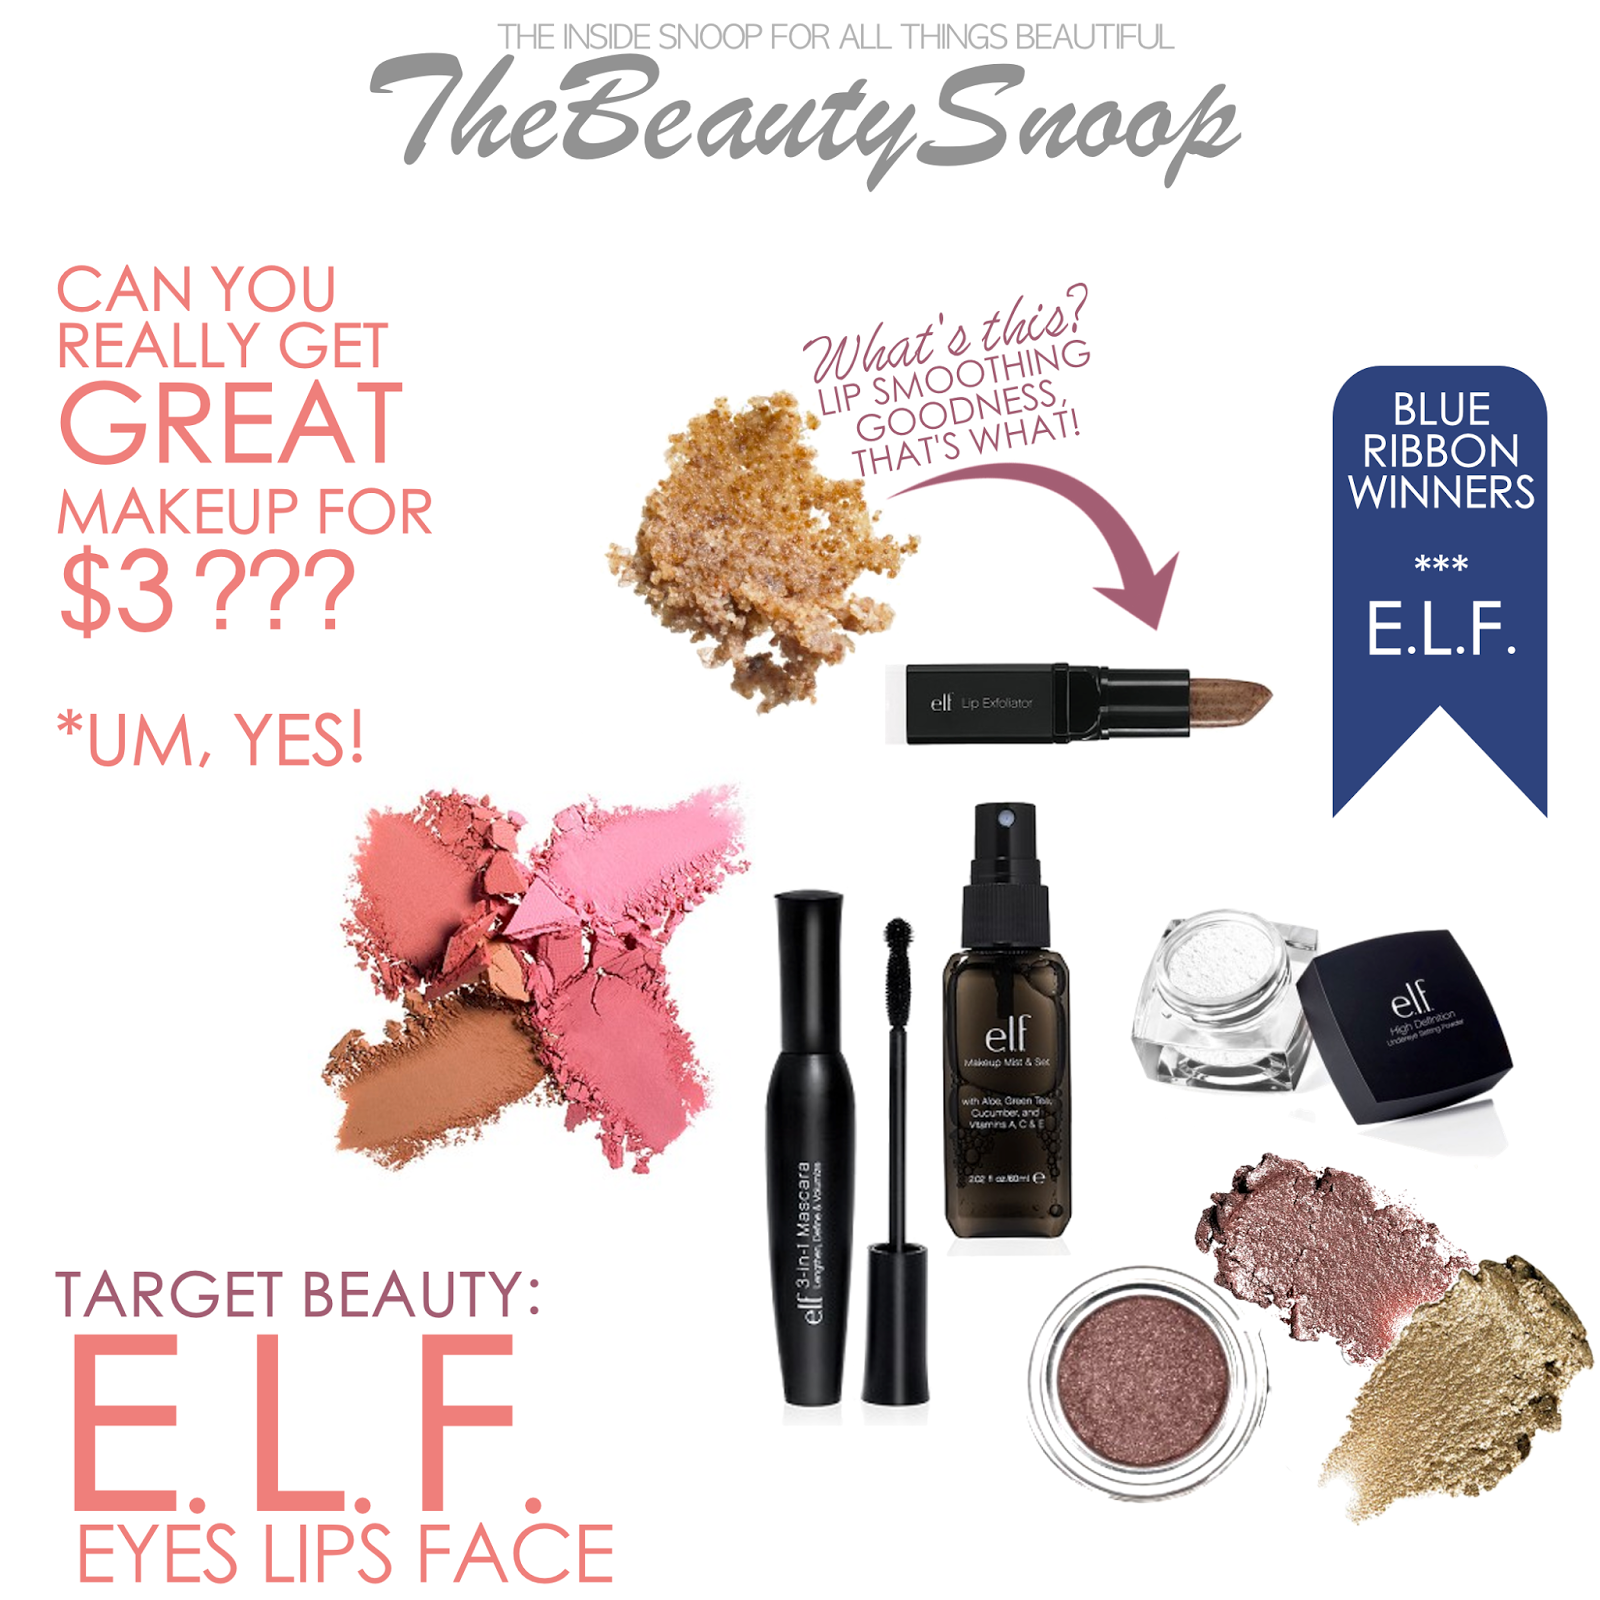 Target Beauty: ELF Makeup Review, E.L.F. Makeup, Budget Makeup, the best cheap makeup brands, Eyes Lips Face